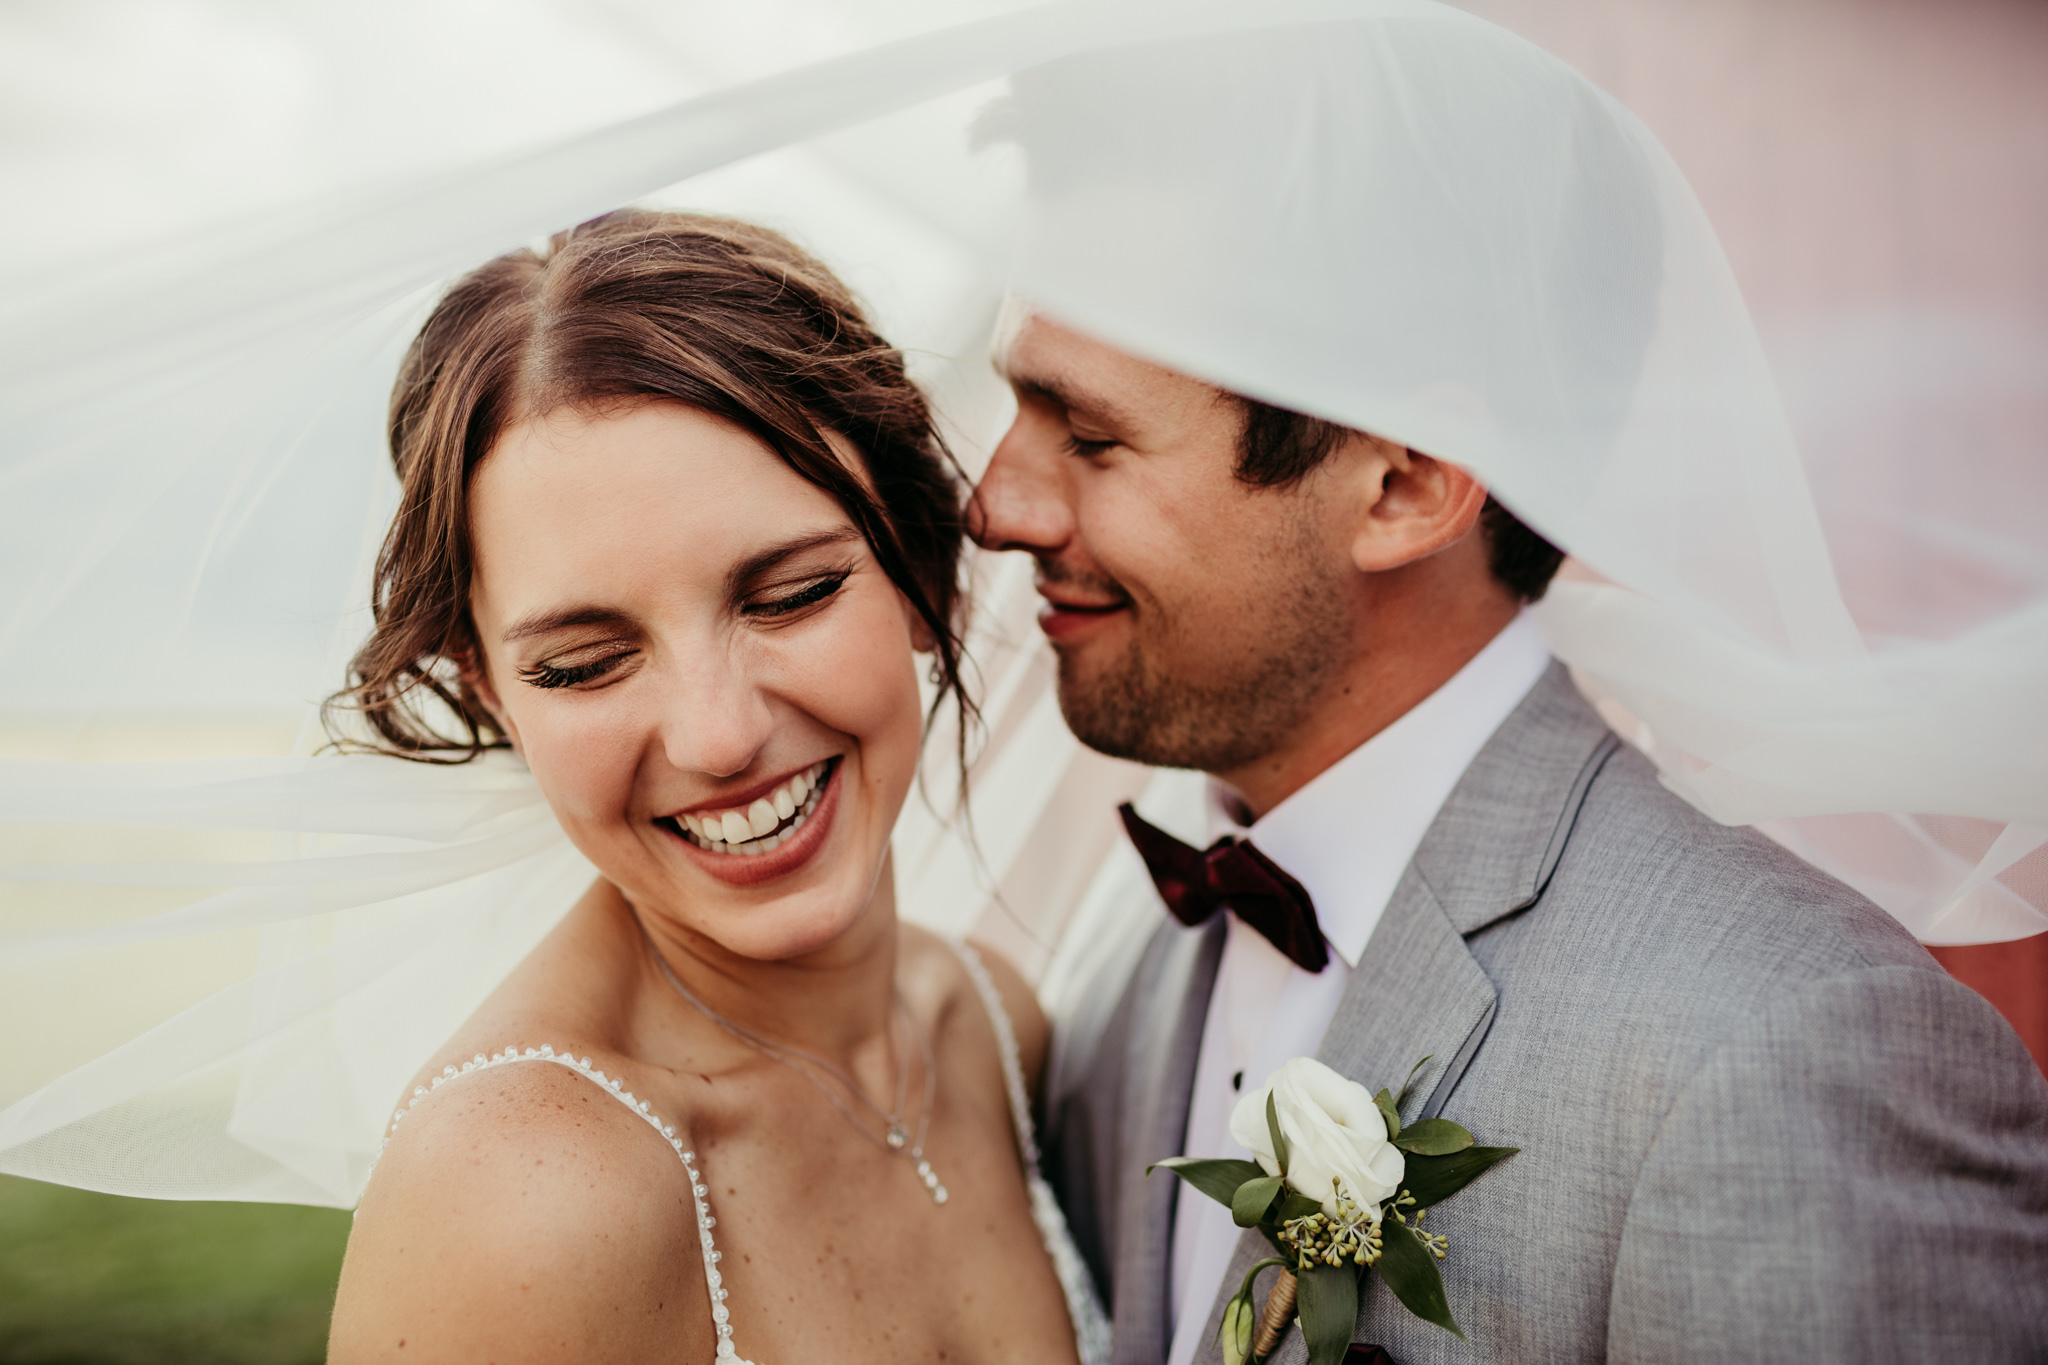 newly married girl with veil over her head laughing while husband smiling towards her ear